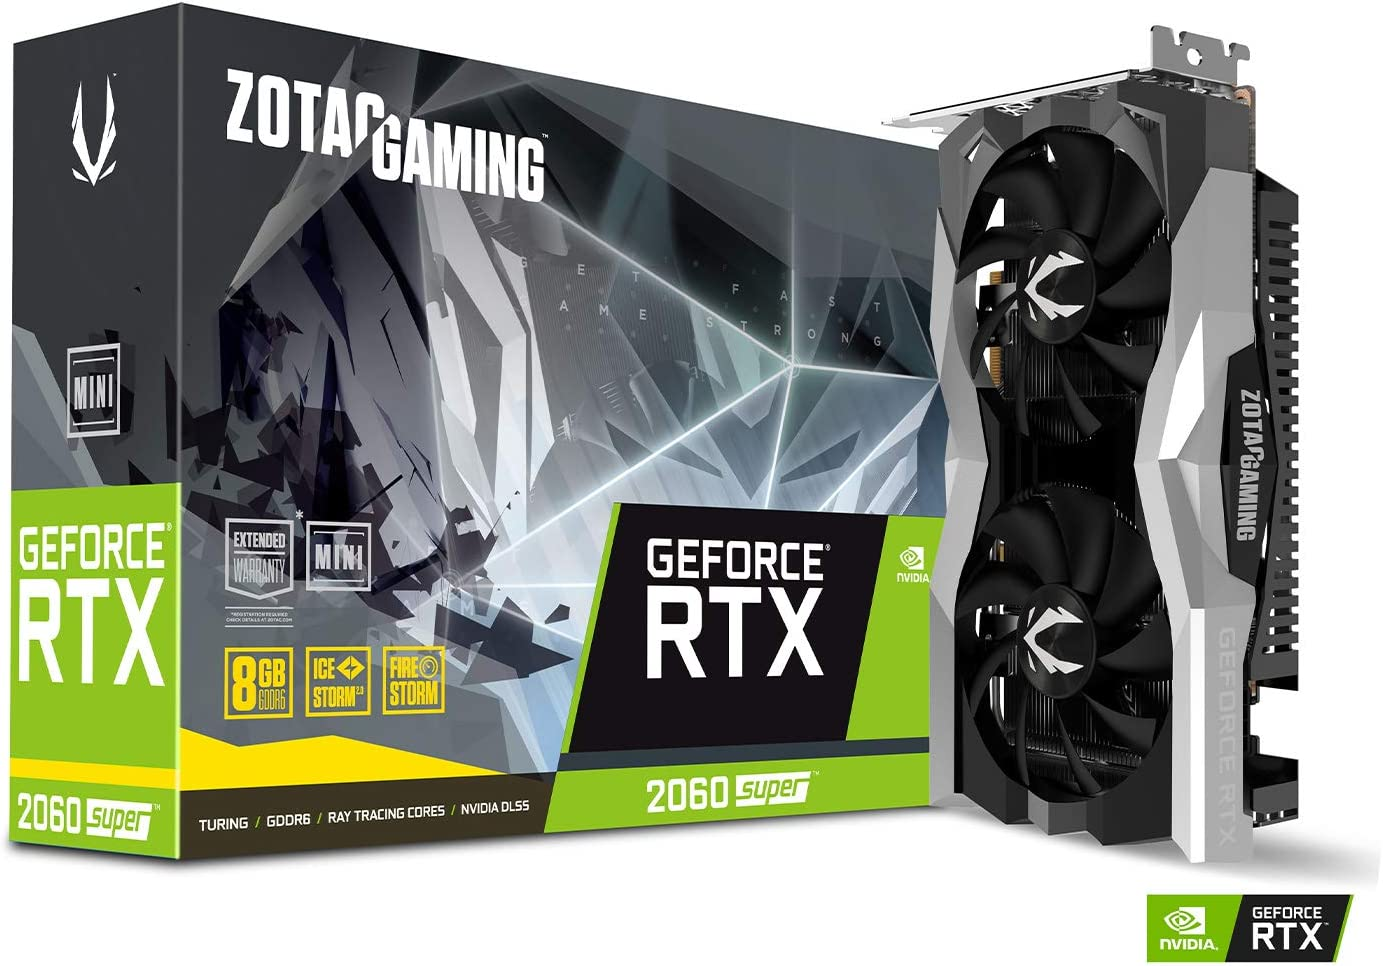 ZOTAC GAMING GeForce RTX 2060 SUPER MINI 8GB GDDR6 256-bit 14Gbps Gaming Graphics Card, IceStorm 2.0, Super Compact, ZT-T20610E-10P